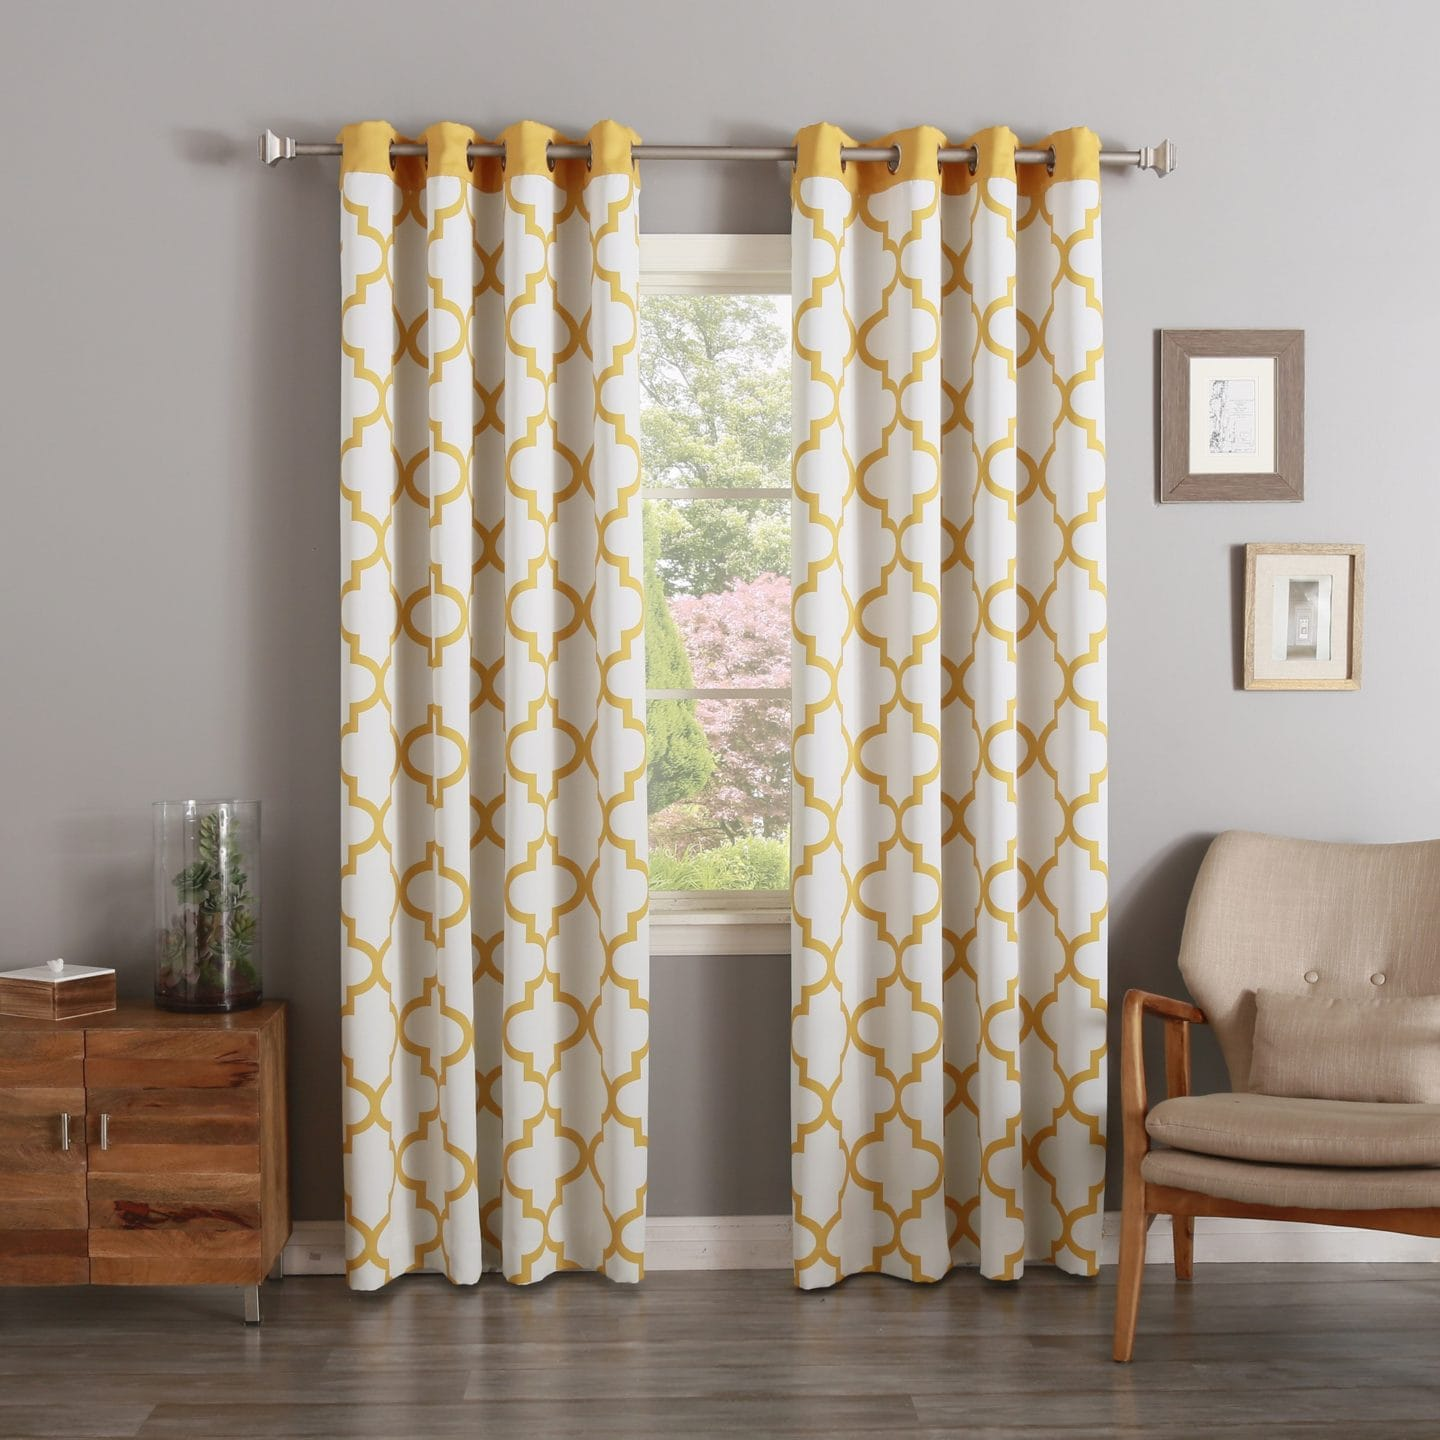 Curtain Insulation Fabric Faqs About Thermal Insulated Curtains Overstock